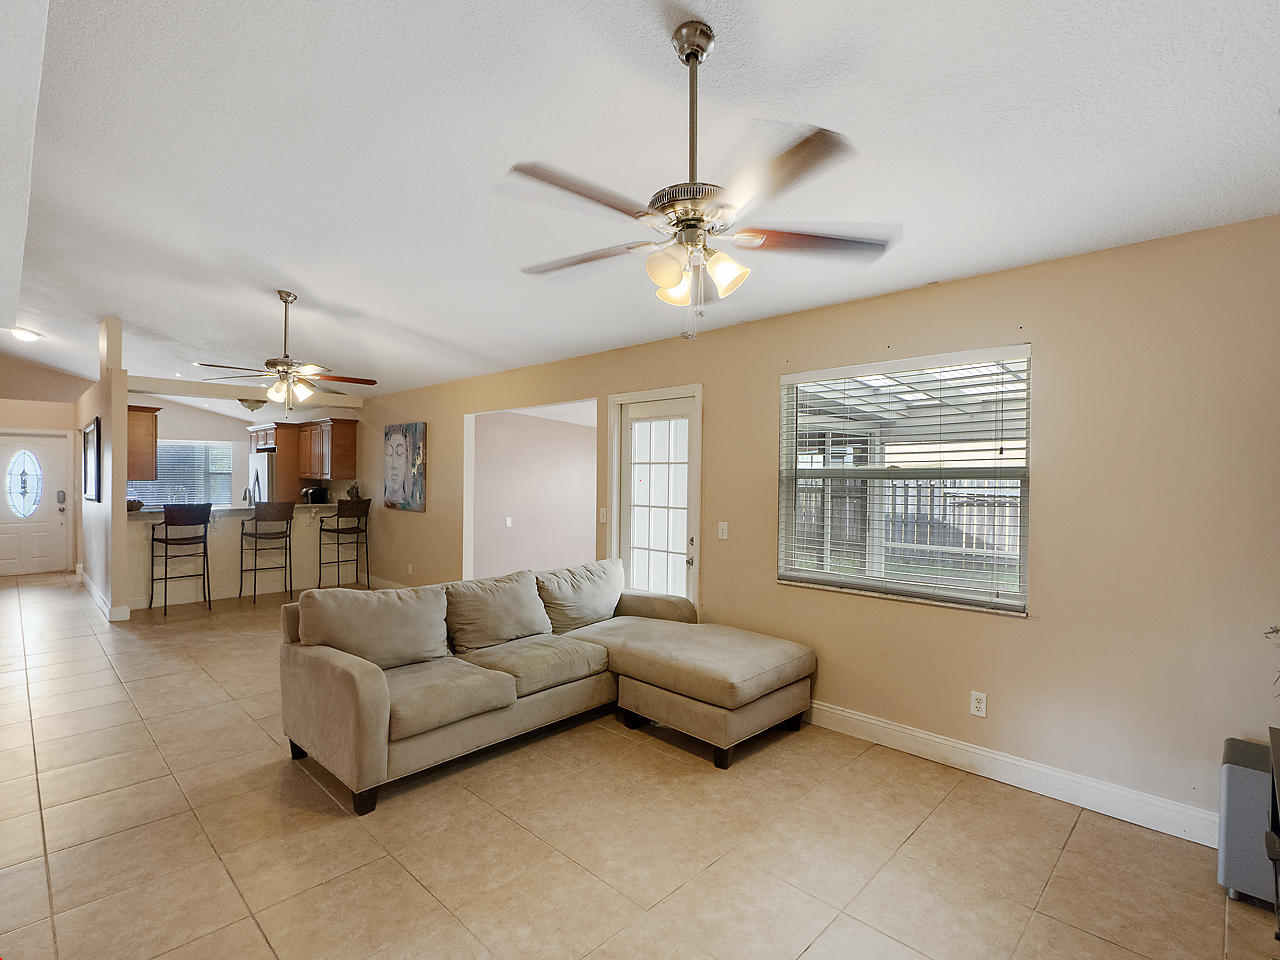 NORTH PALM BEACH HEIGHTS REALTY